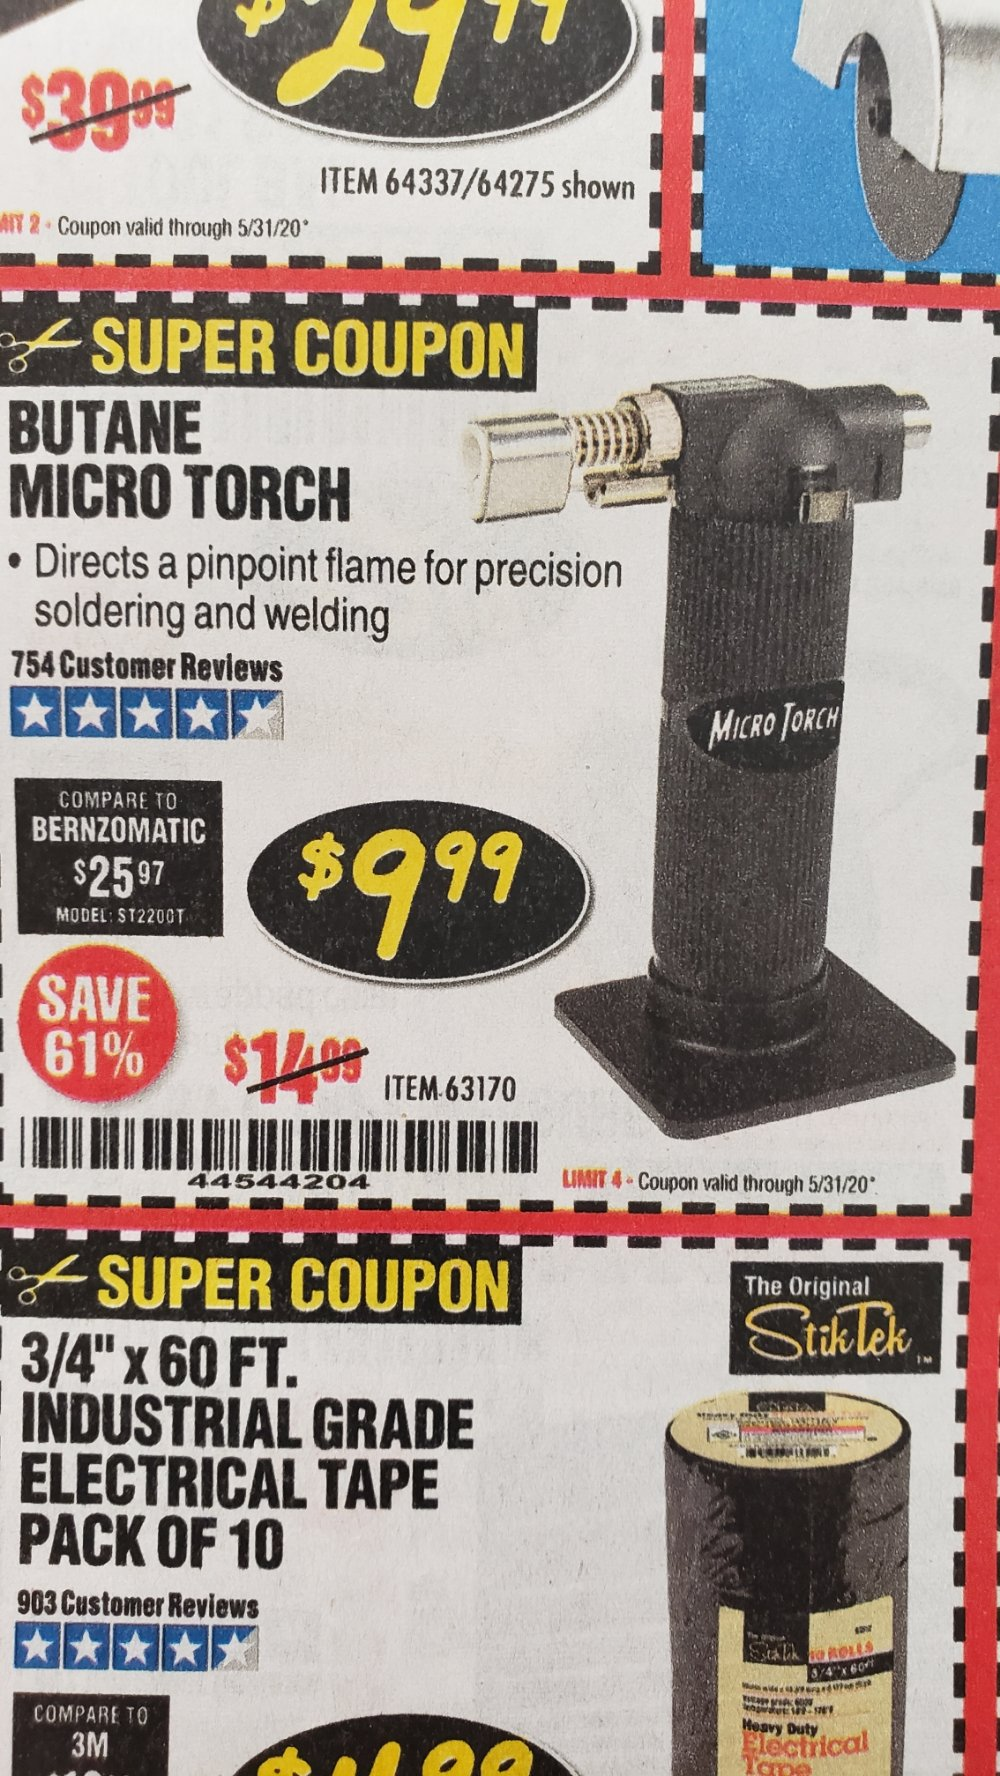 Harbor Freight Coupon, HF Coupons - Butane Micro Torch